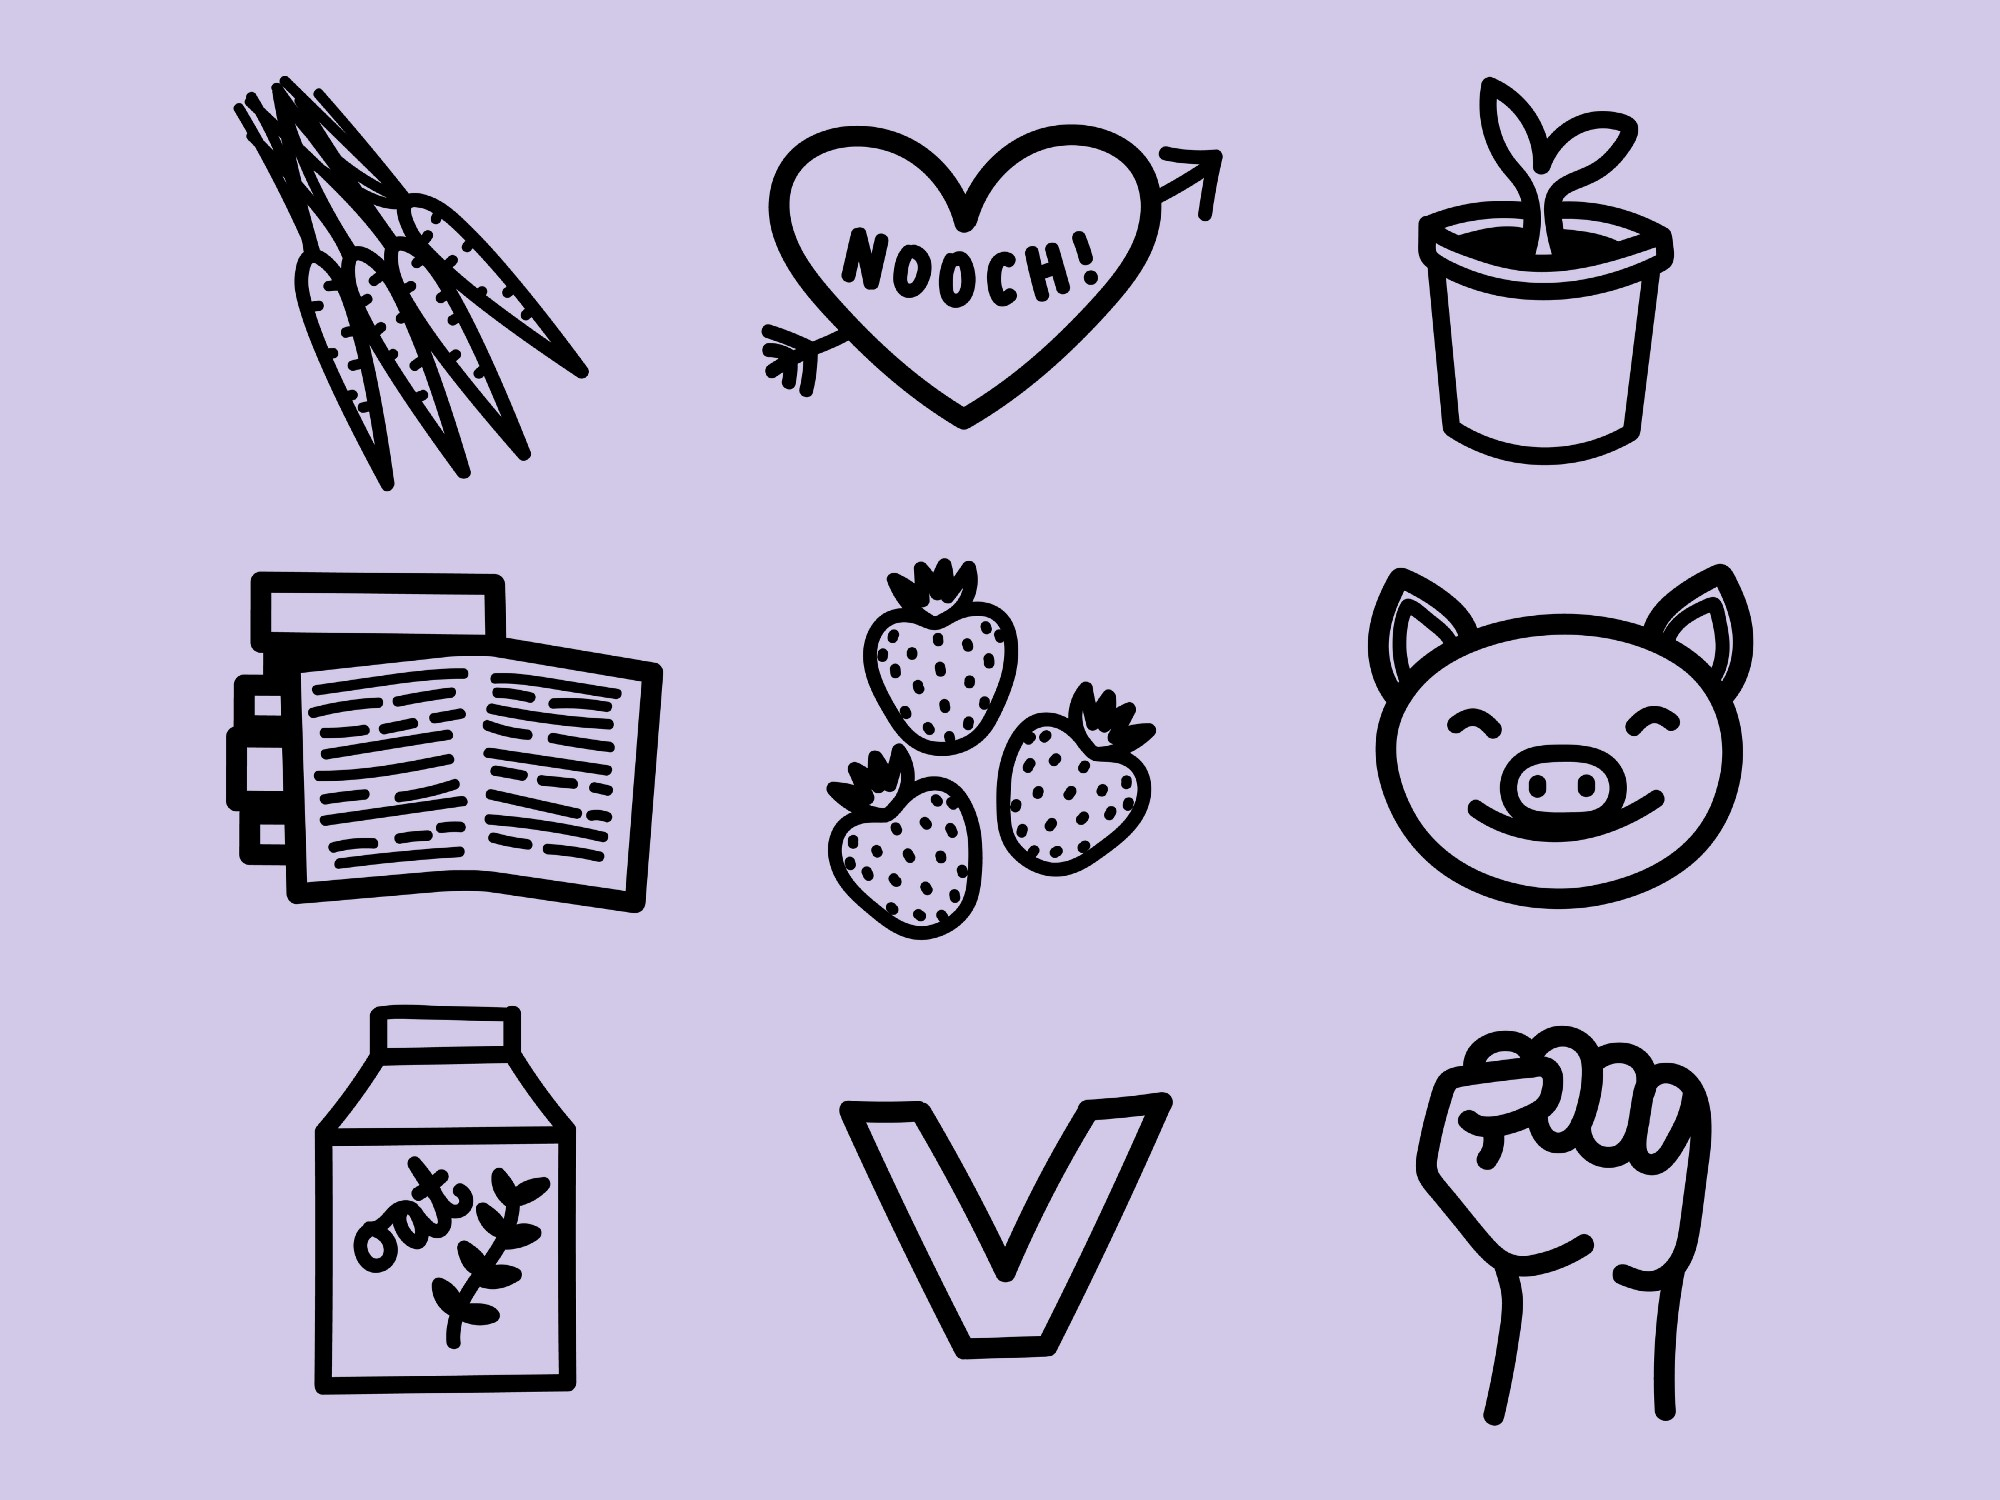 a set of vegan-related line drawings on a lavender background: a smiling pig, strawberries, carrots, books, oat milk, etc